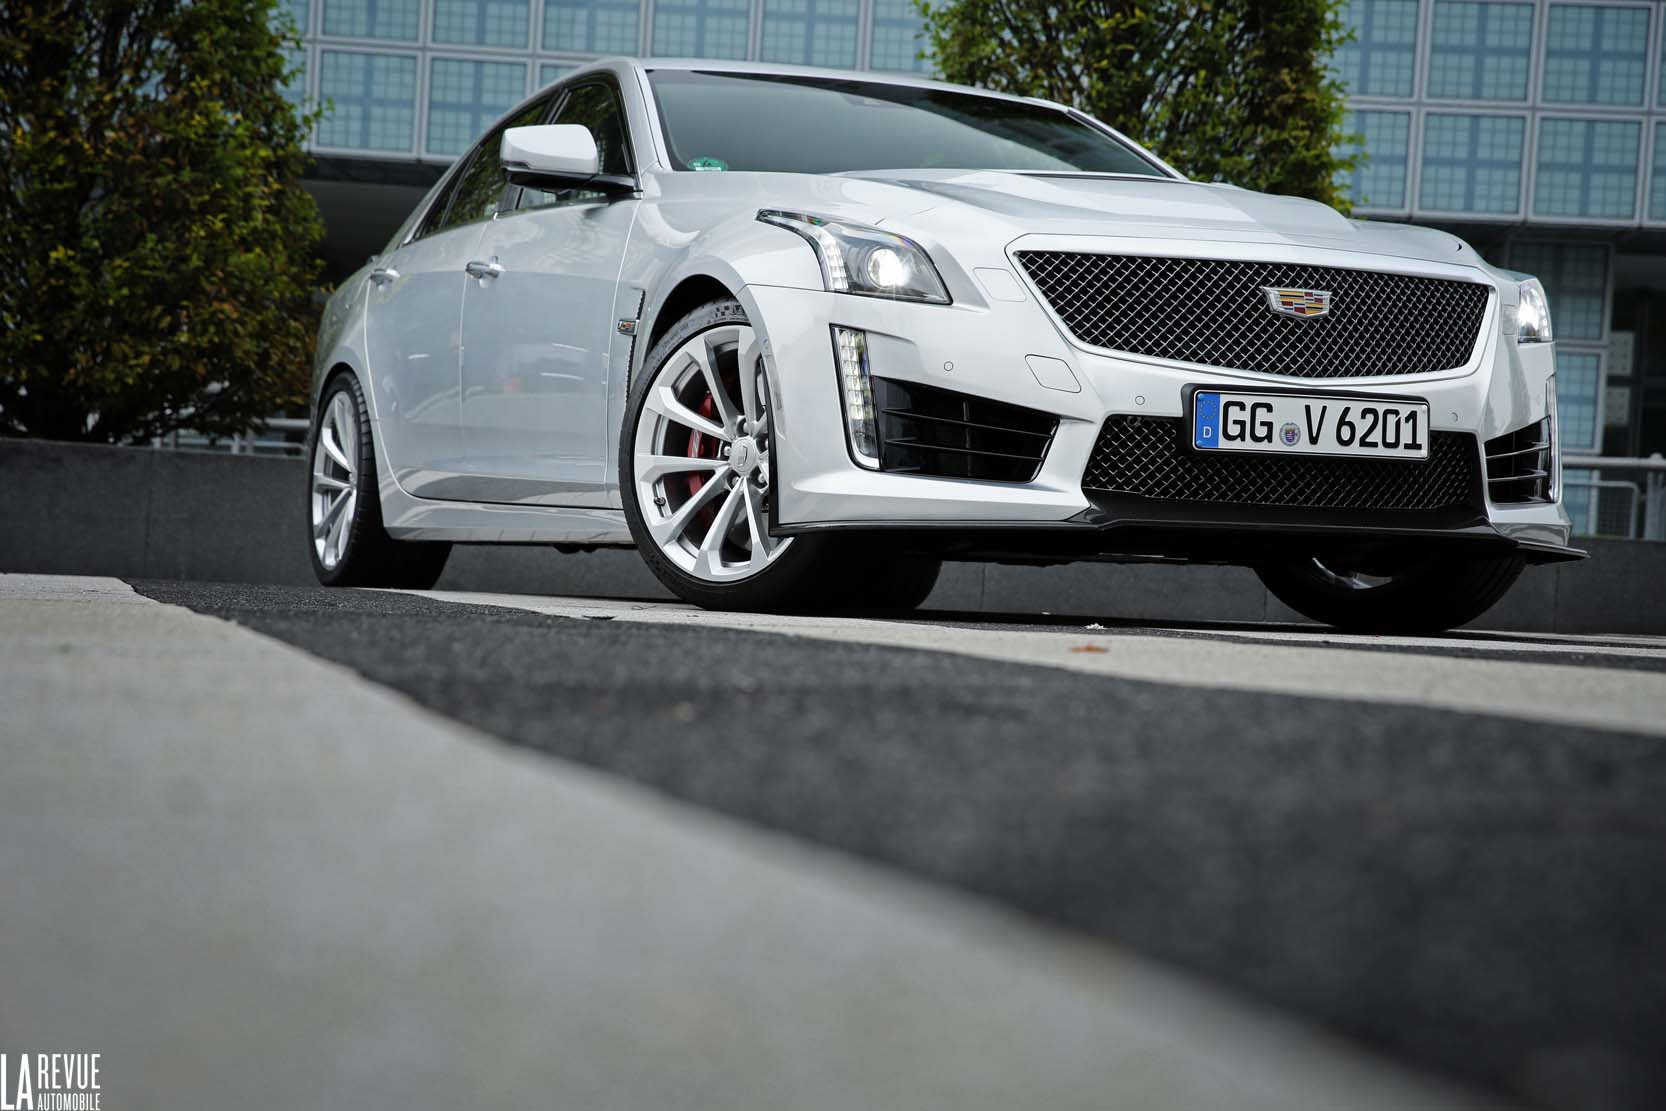 Exterieur_Cadillac-CTS-V-2015_15